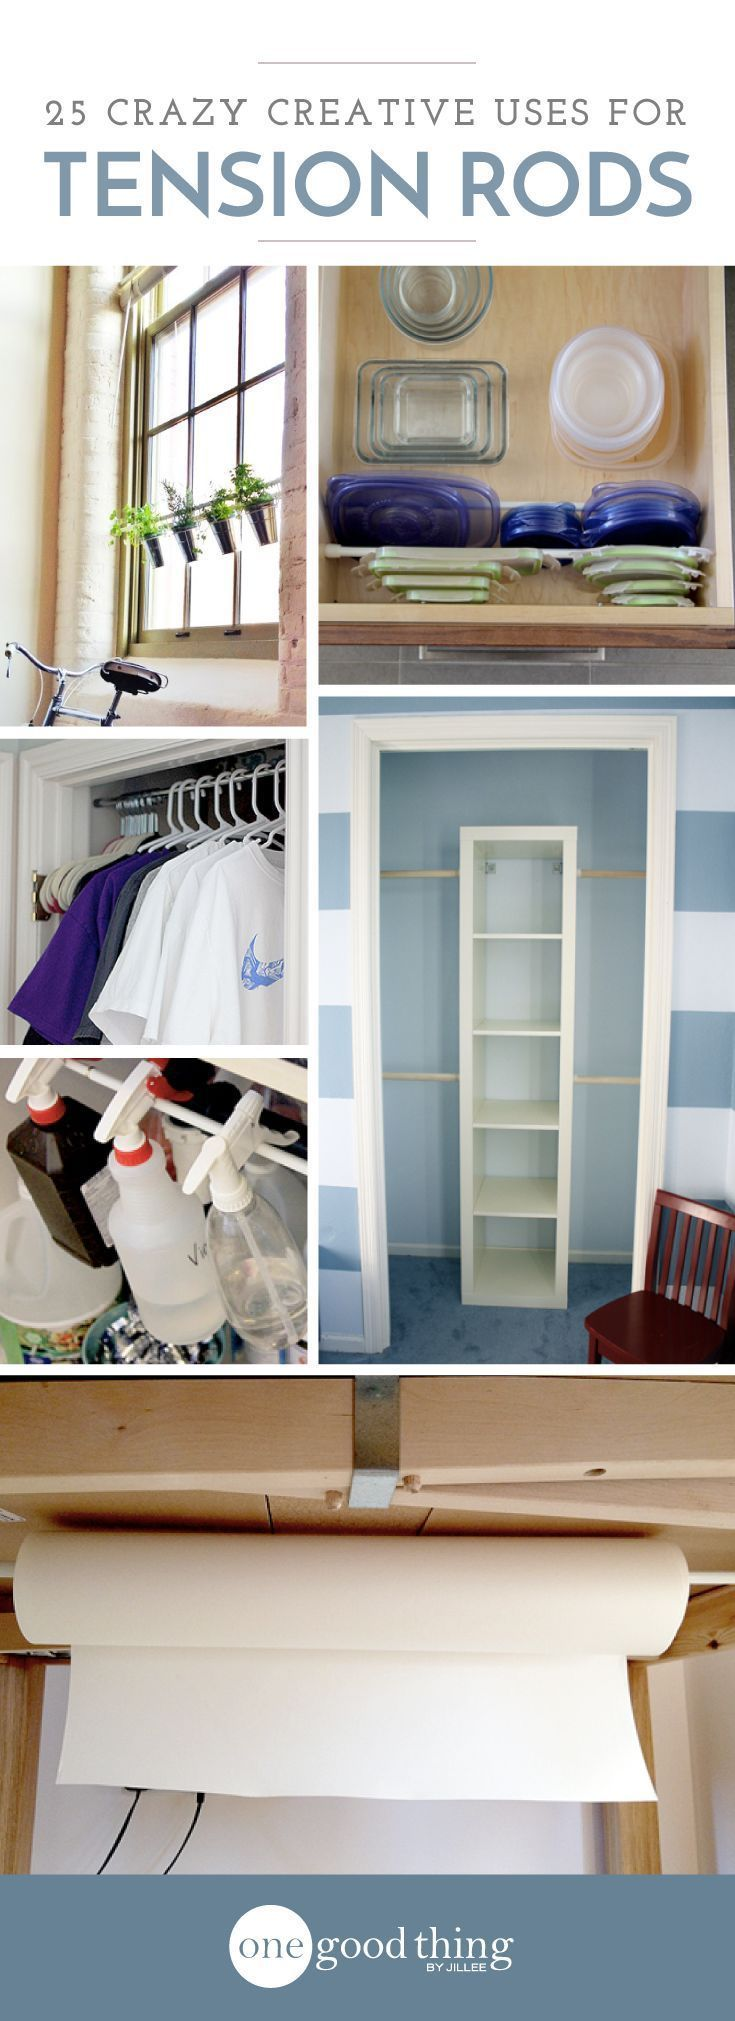 Tension rods might just be one of THE most useful items organizing your home…